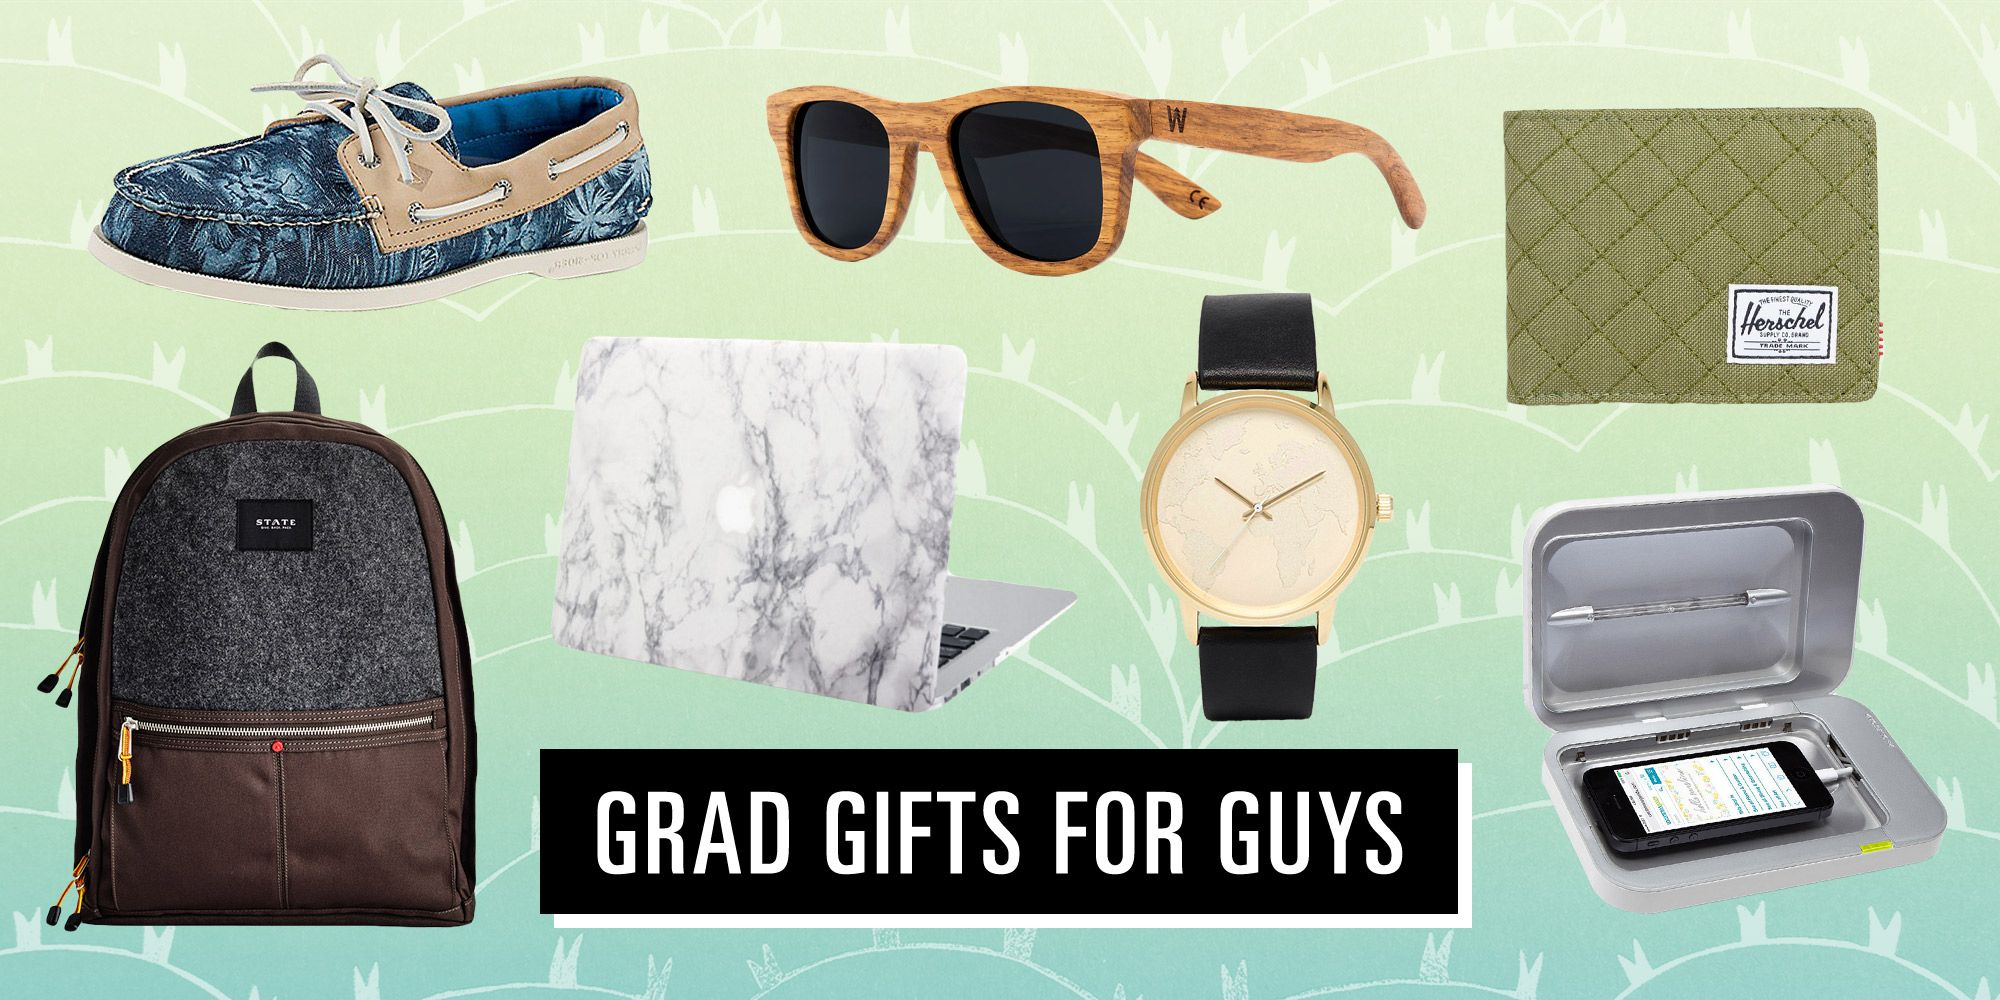 19 super cool graduation gifts your guy will flip for college